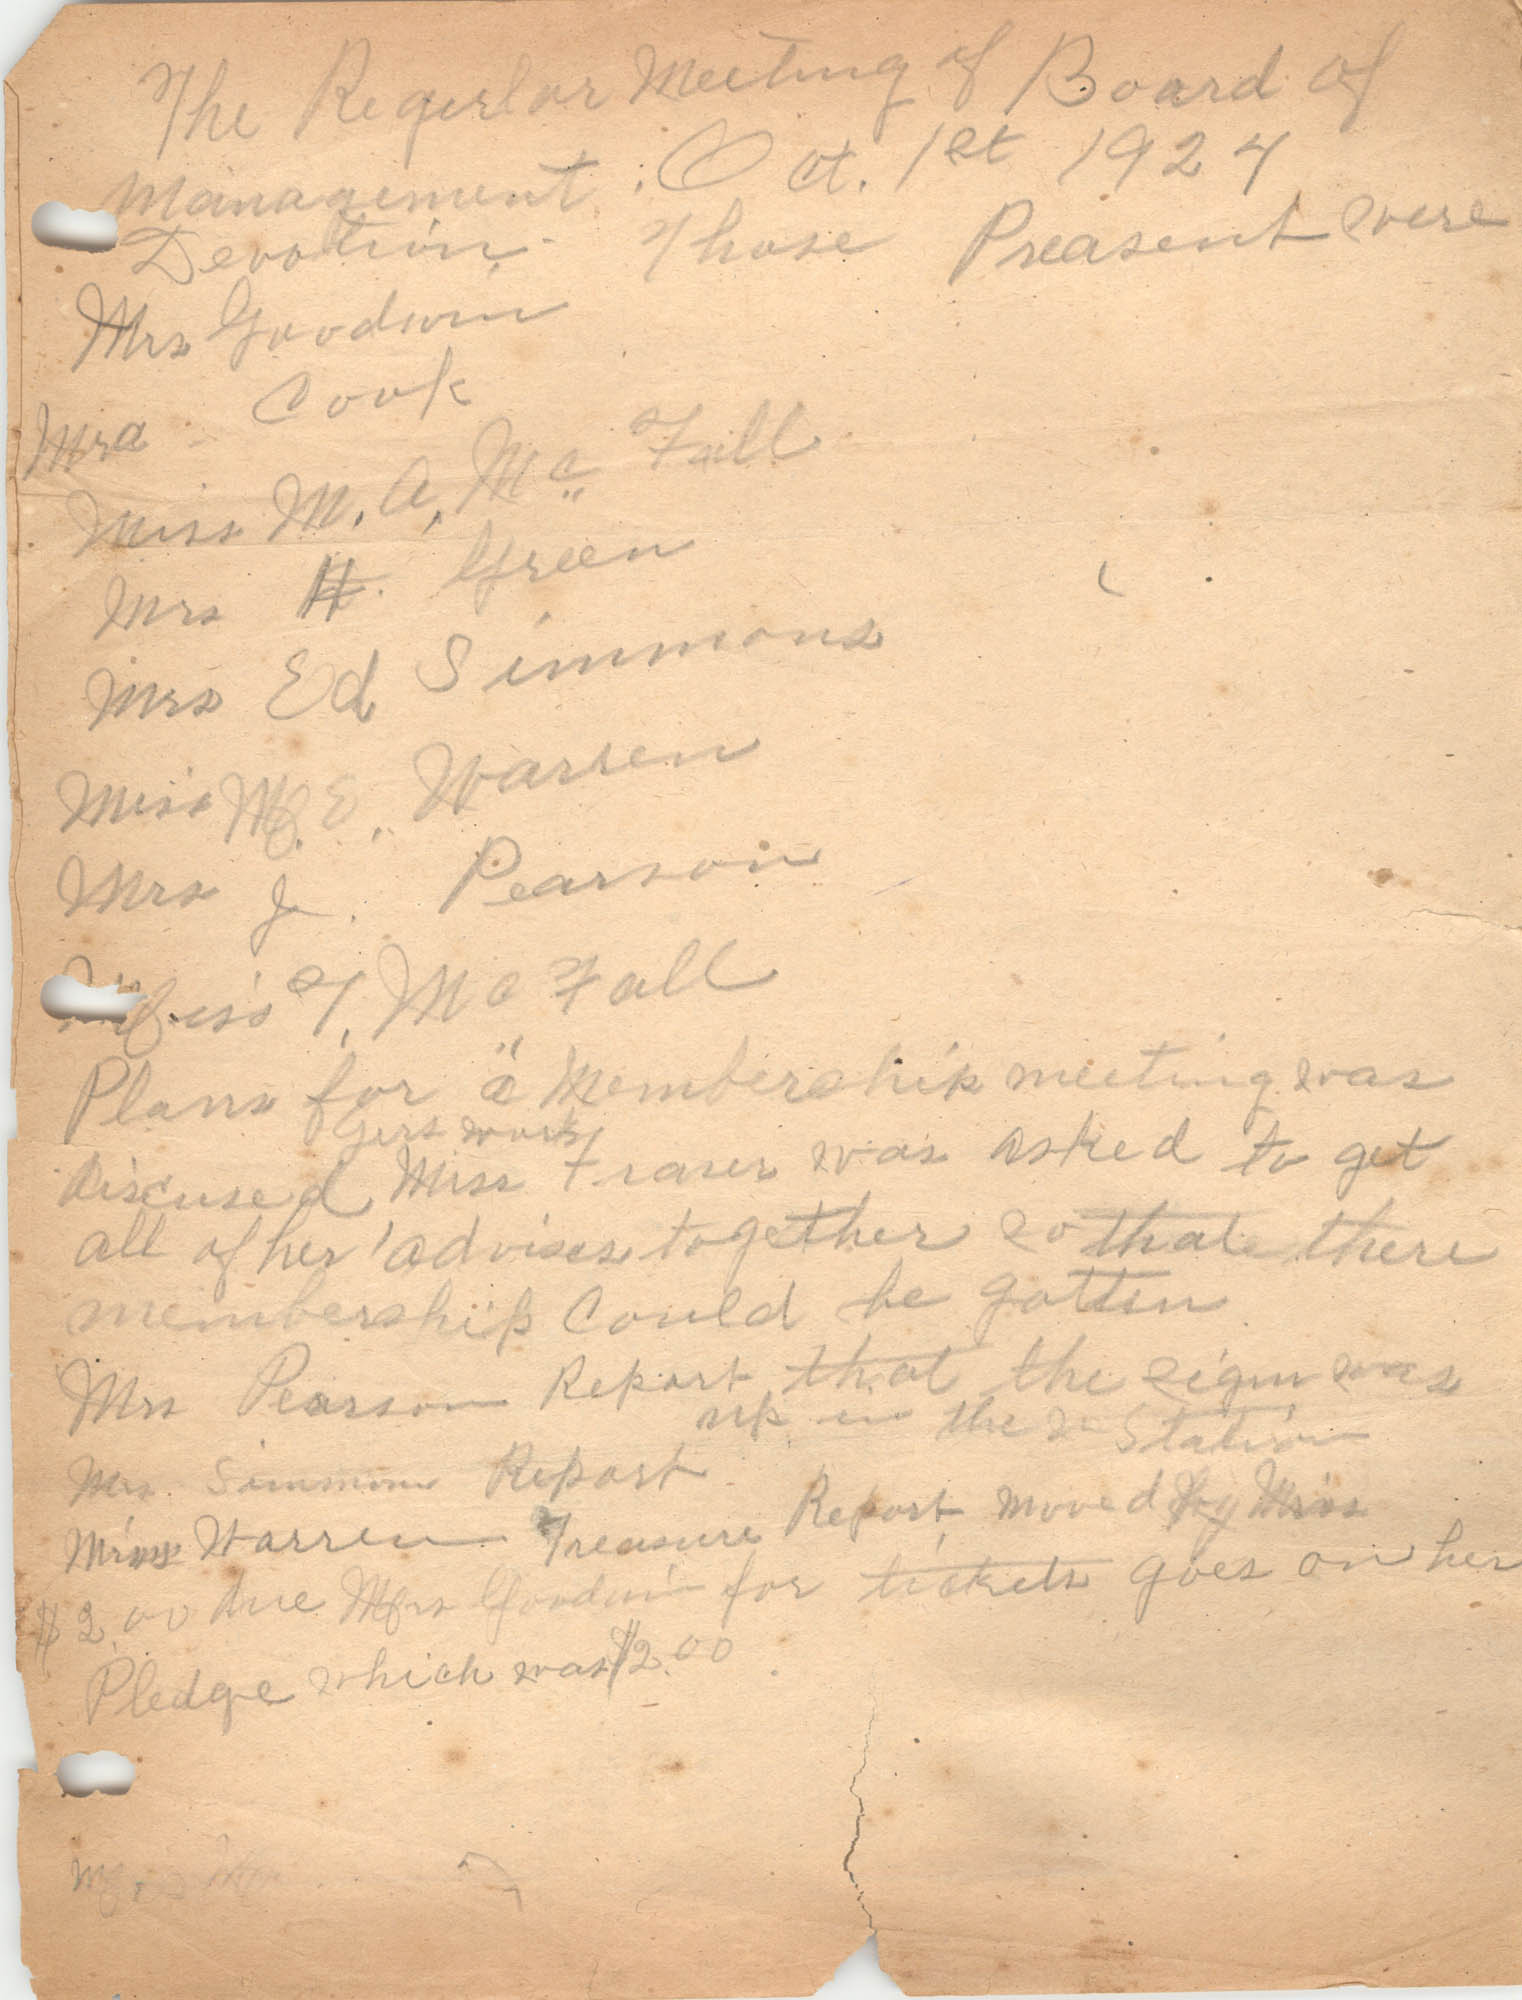 Minutes to the Board of Management, Coming Street Y.W.C.A., October 1, 1924